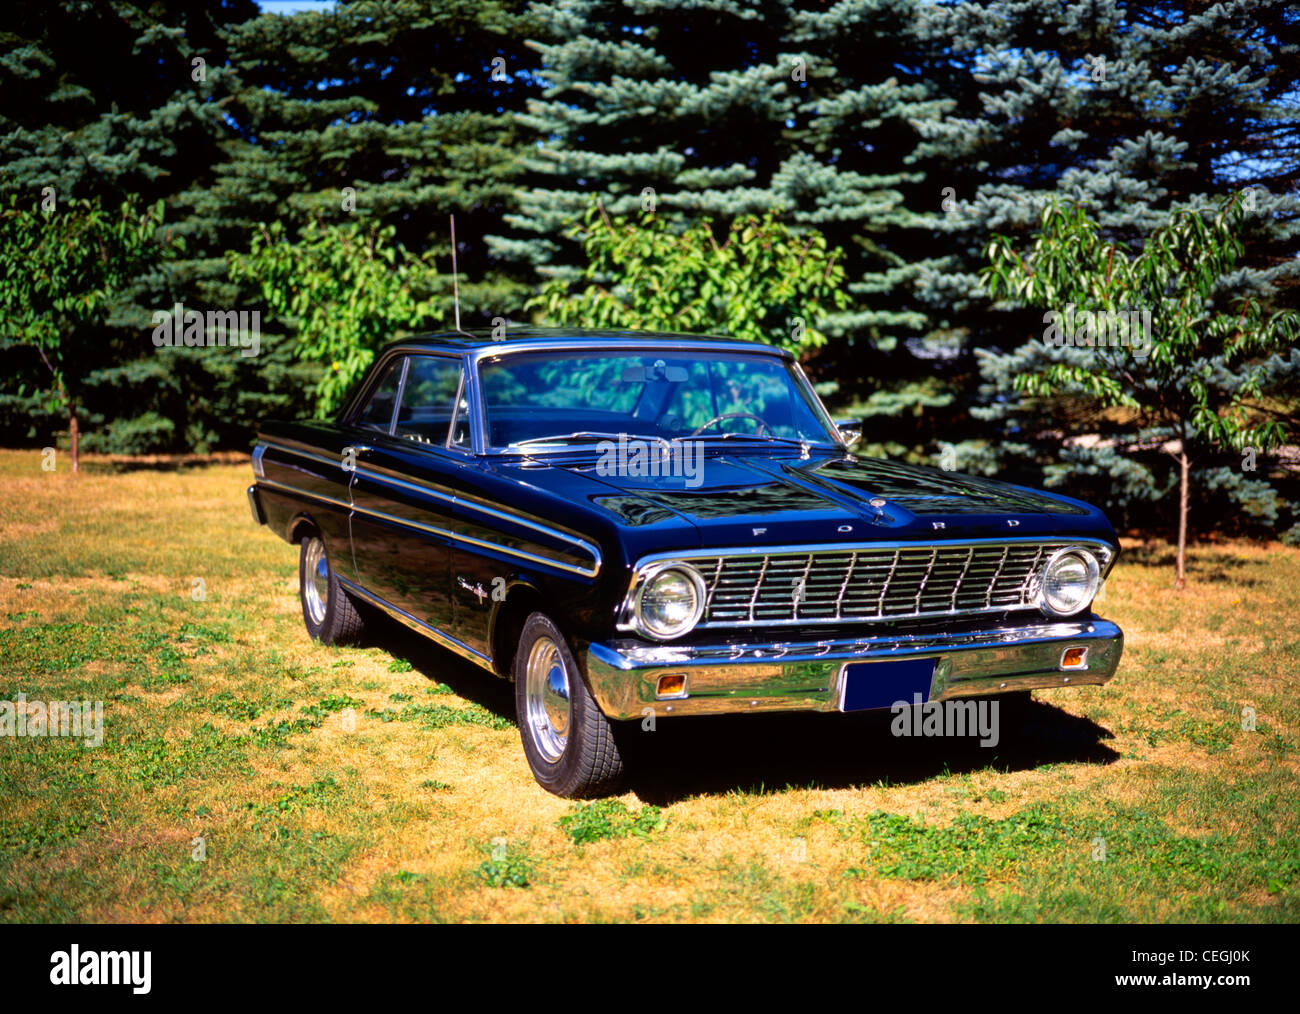 Ford Falcon Sprint Stock Photos Images 1964 Image